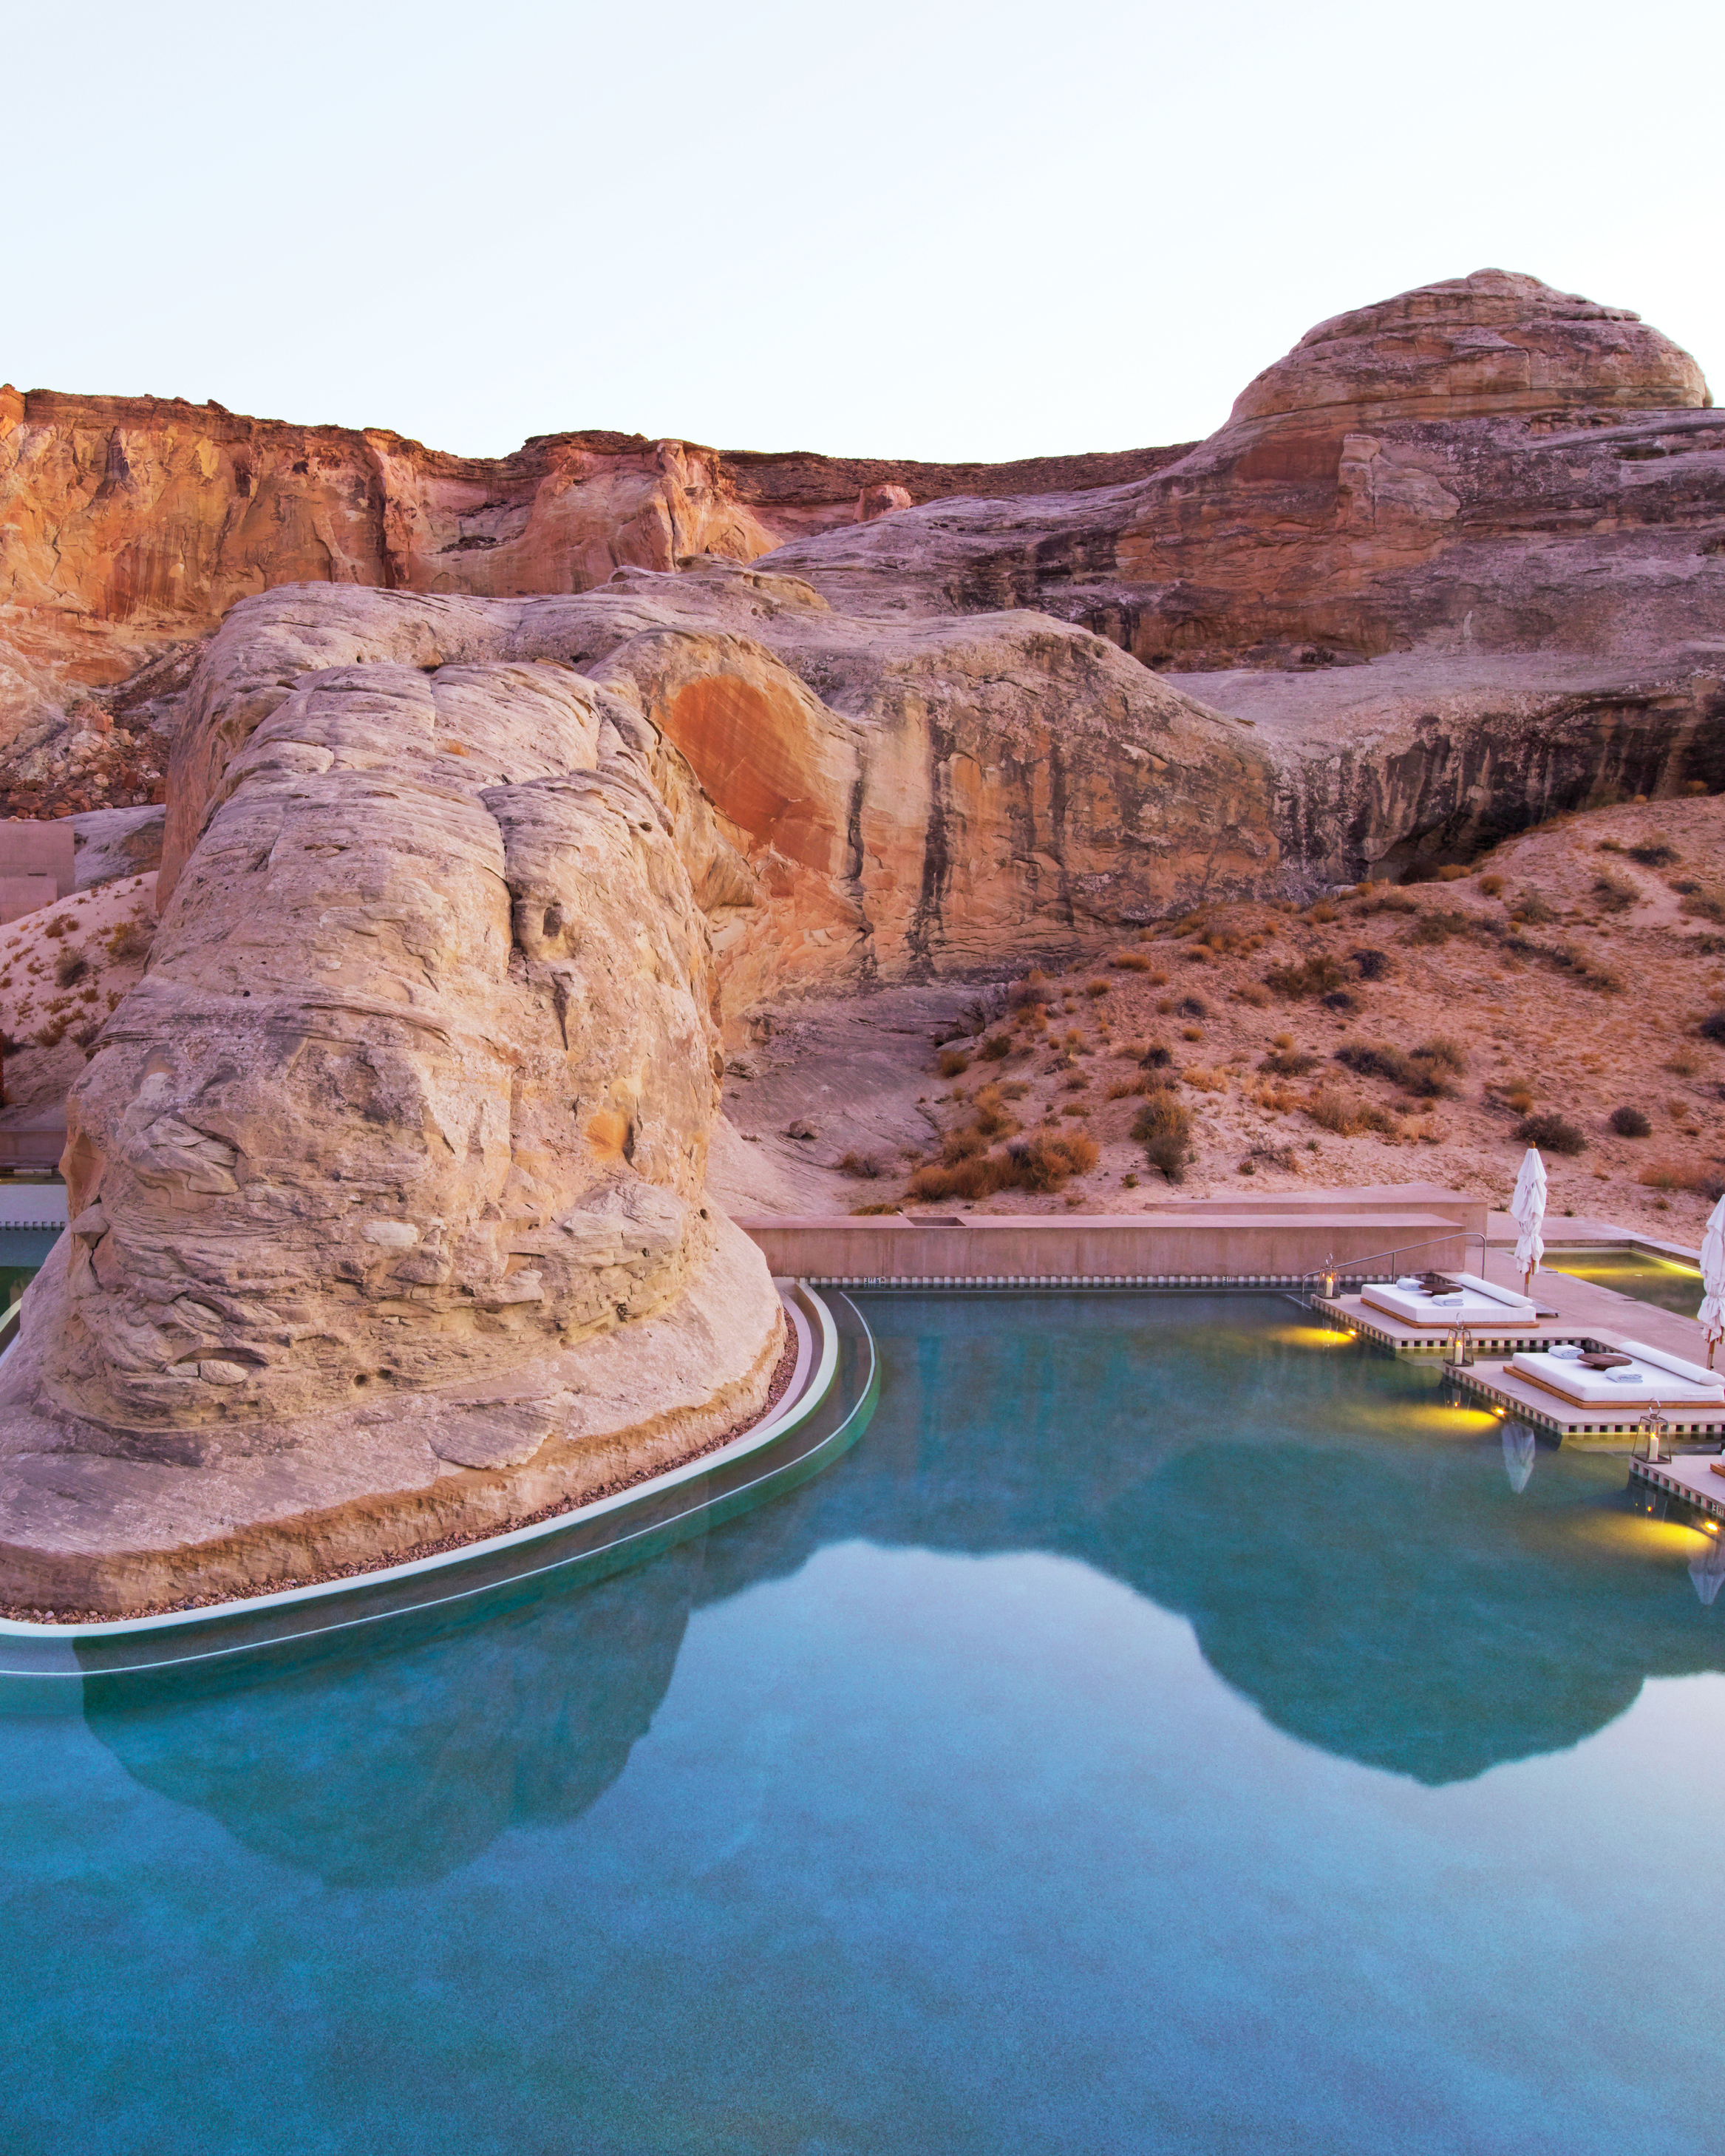 red-rock-rs992-amangiri--swimming-pool-dusk-mwds111006.jpg